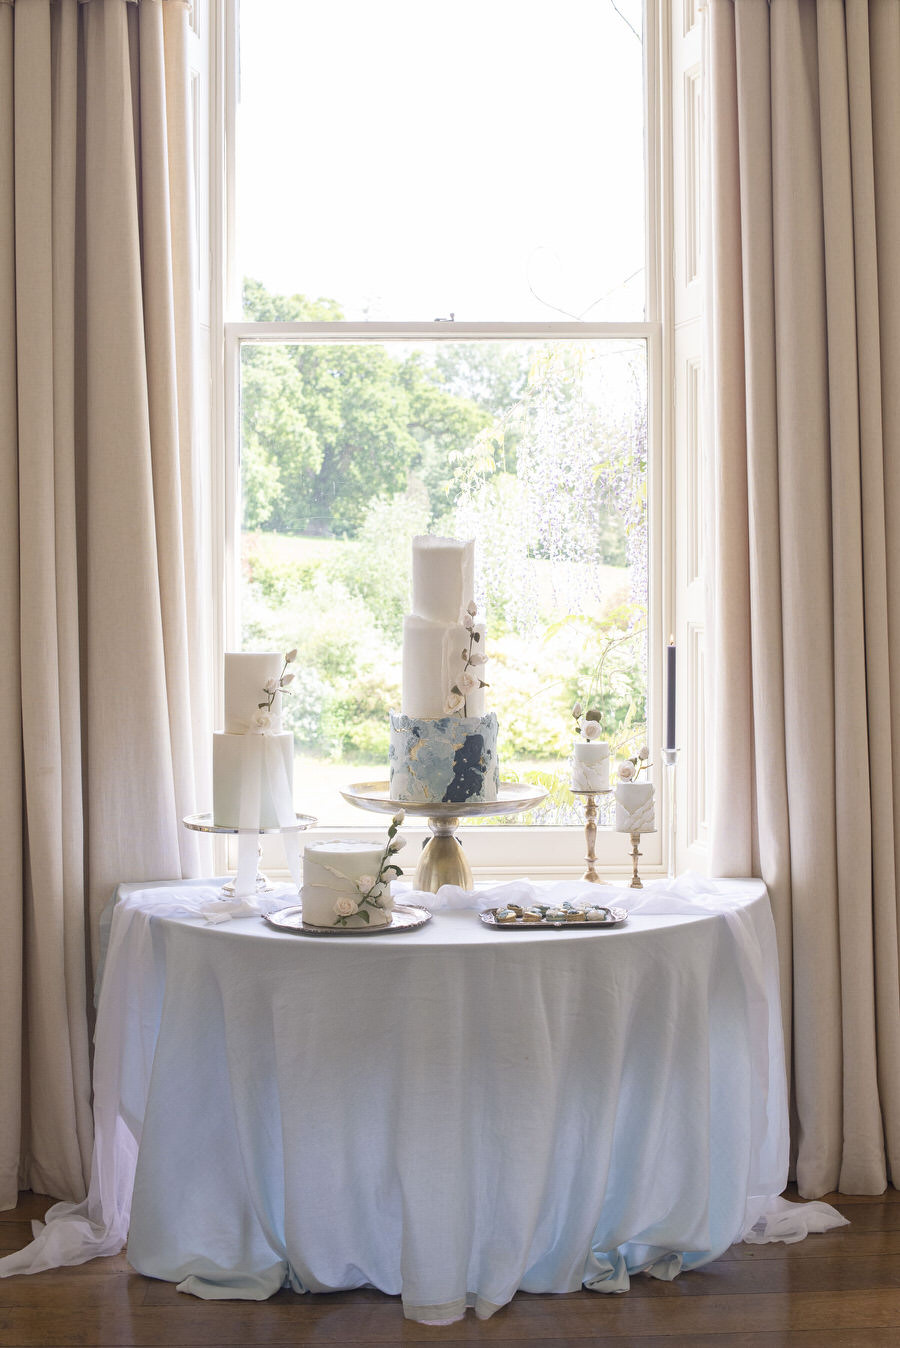 Pynes House wedding styling ideas with Ailsa Munro, Sarah Shuttle and Lottie Ettling PHotography (14)